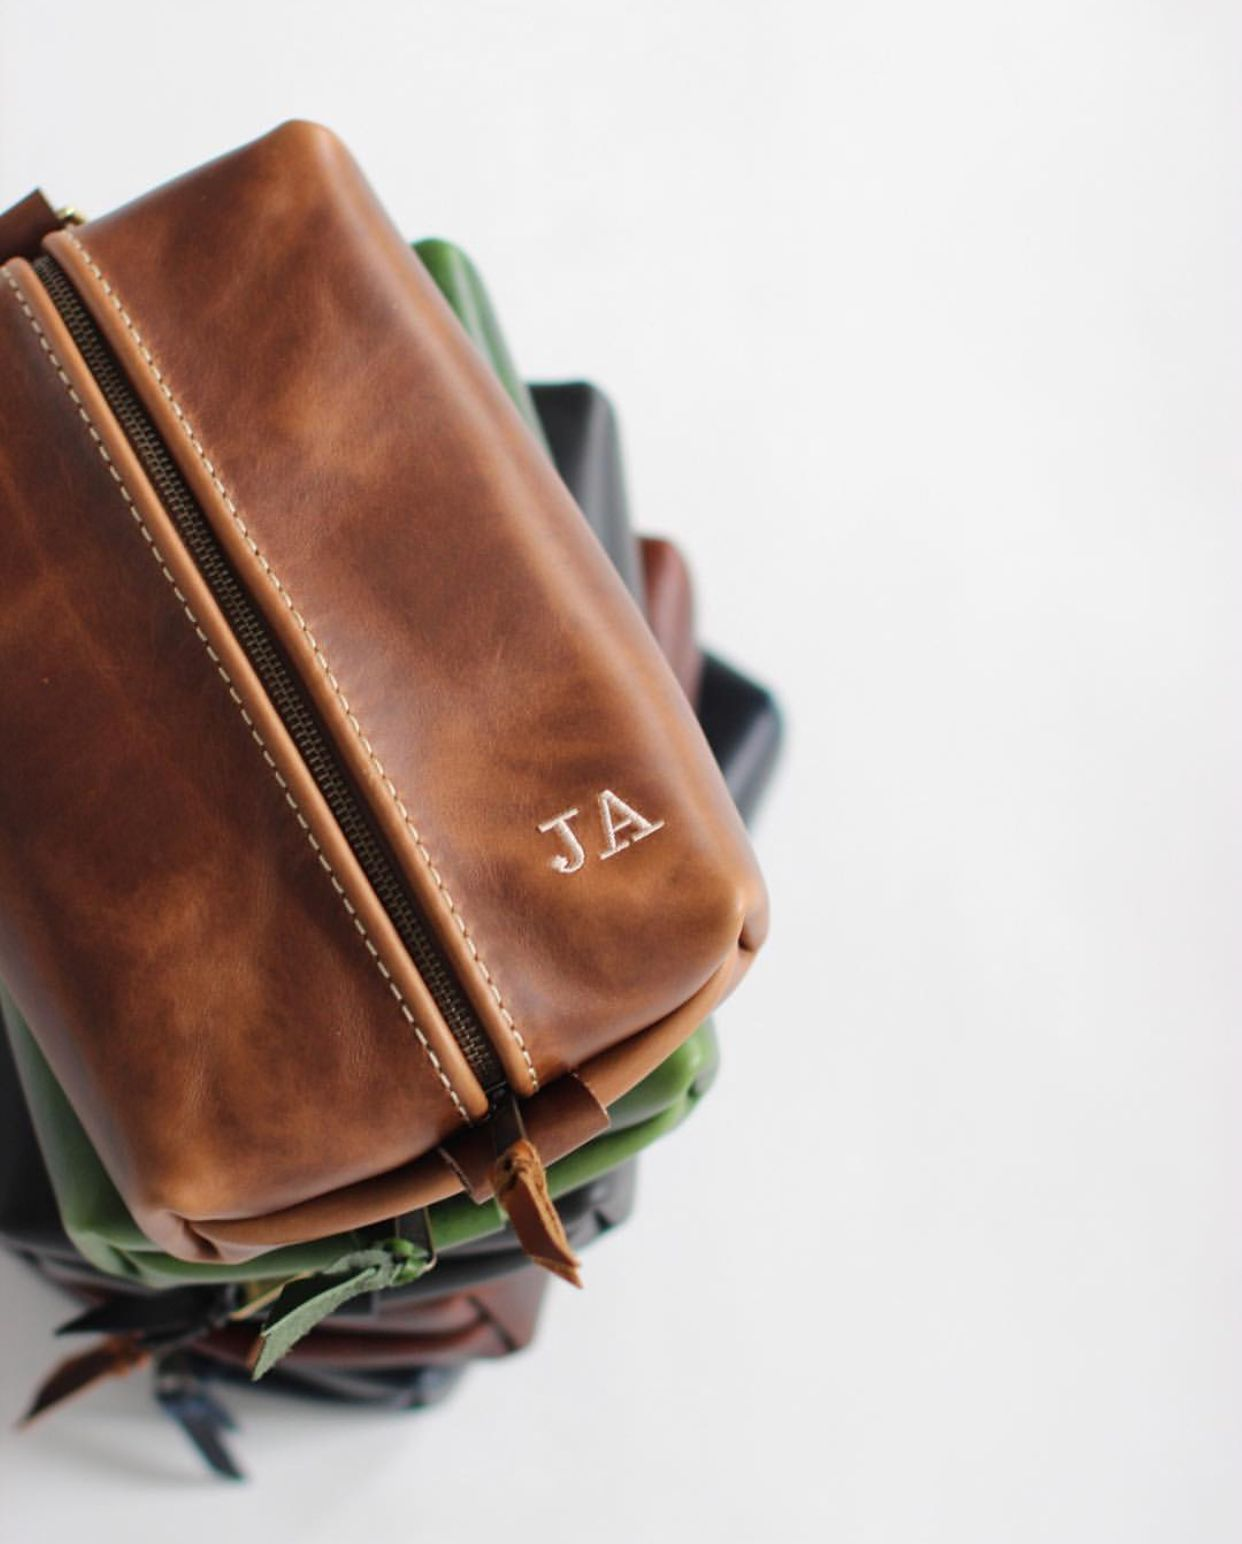 Don t mix up your toiletry bags! We can have them personalized with your  initials. Made from genuine leather designed to last you a lifetime! e51b8faea51ba